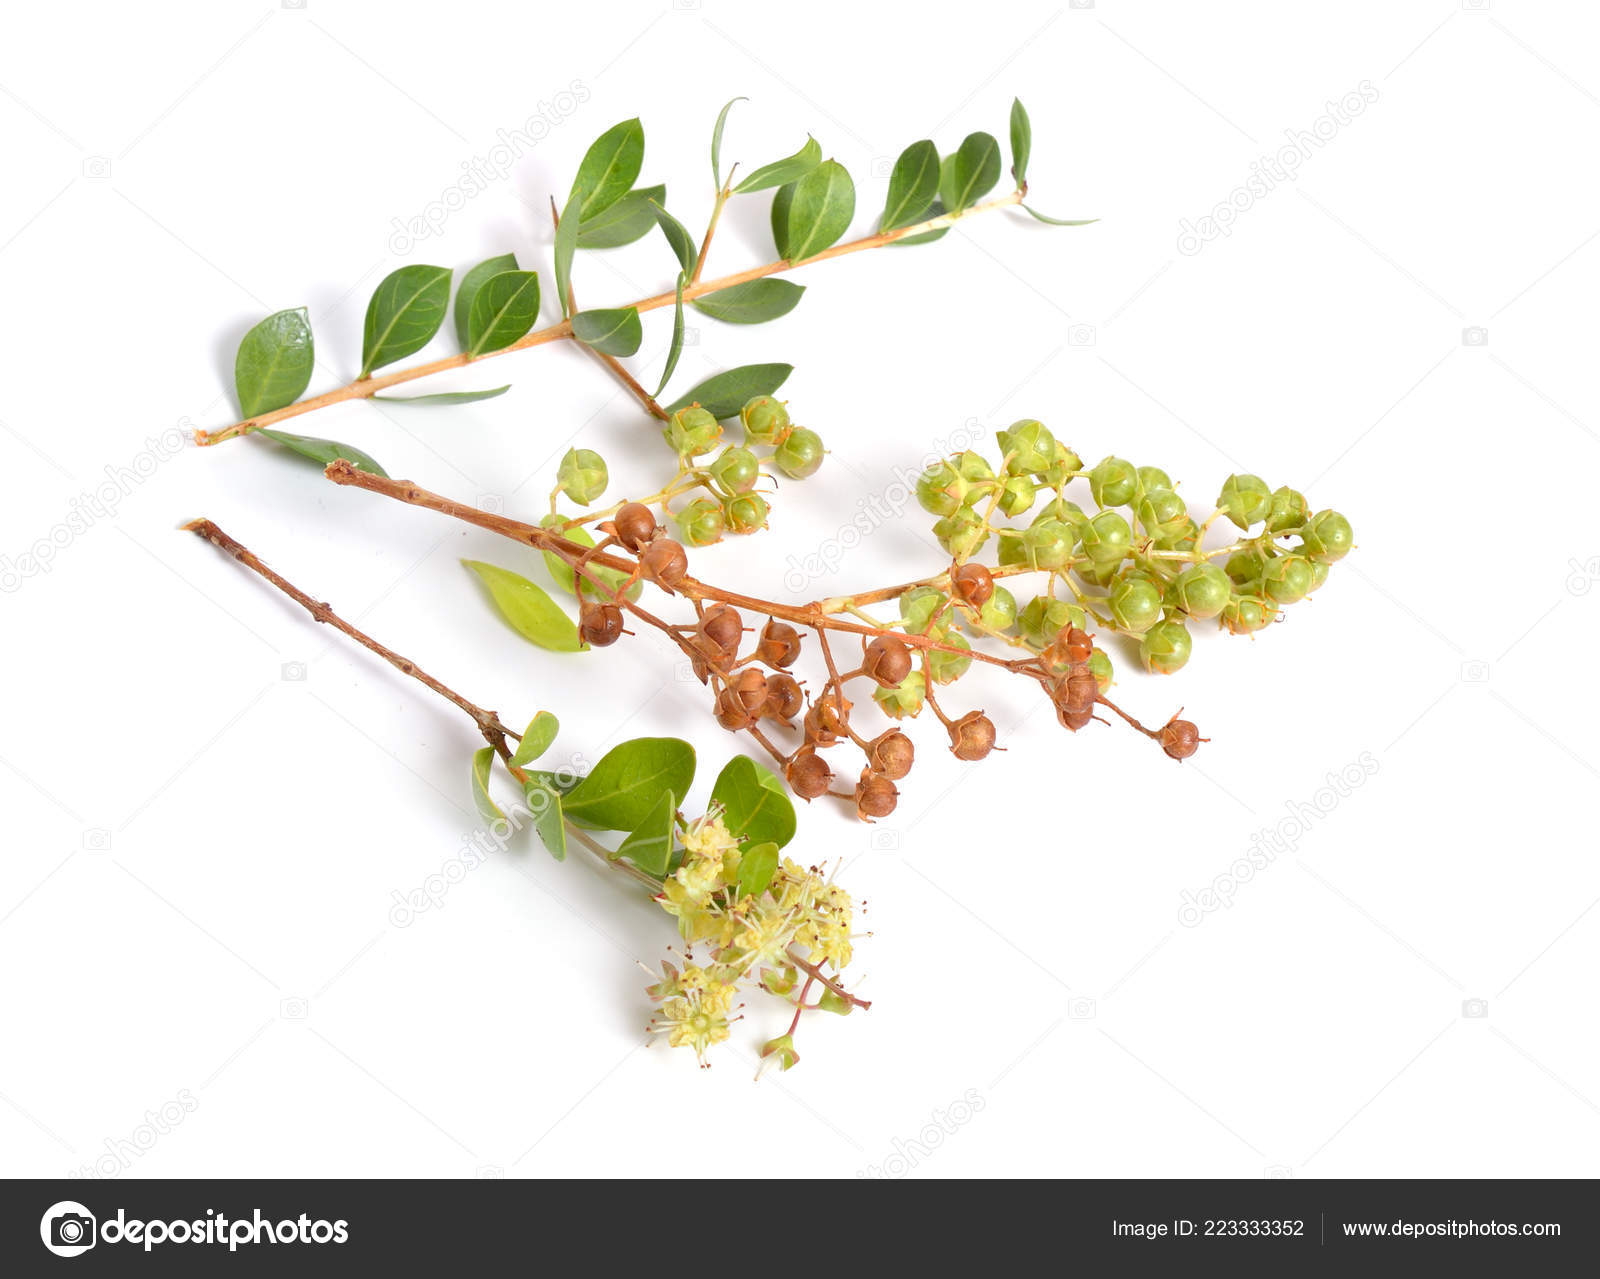 Lawsonia Inermis Also Known Hina Henna Tree Mignonette Tree Egyptian